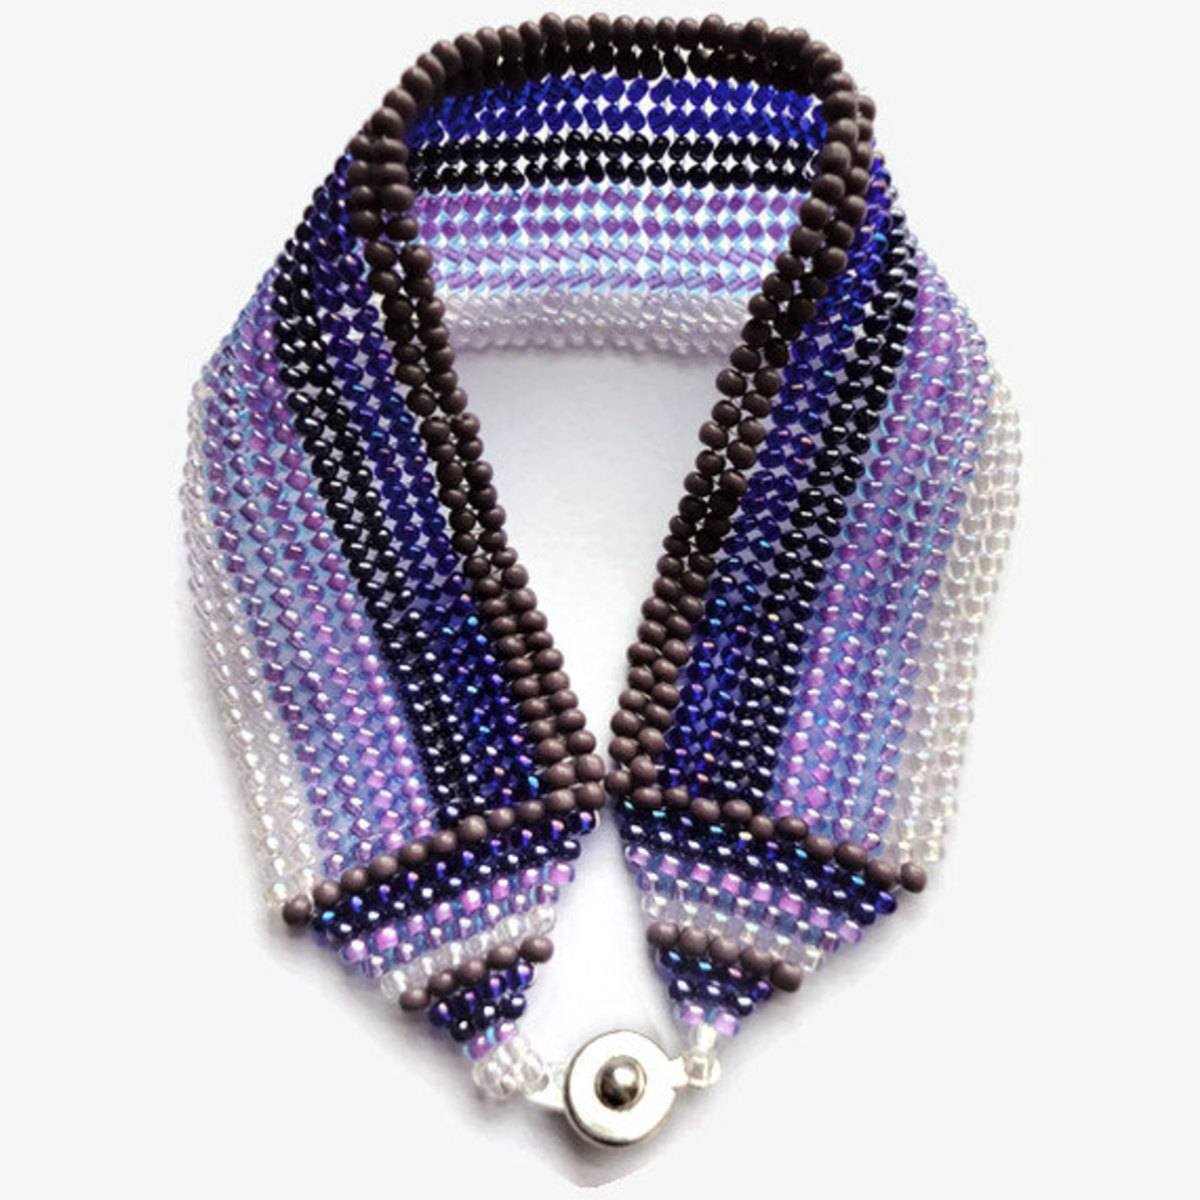 Herringbone or Ndebele Beadweaving Technique: Versatility, Patterns, and More